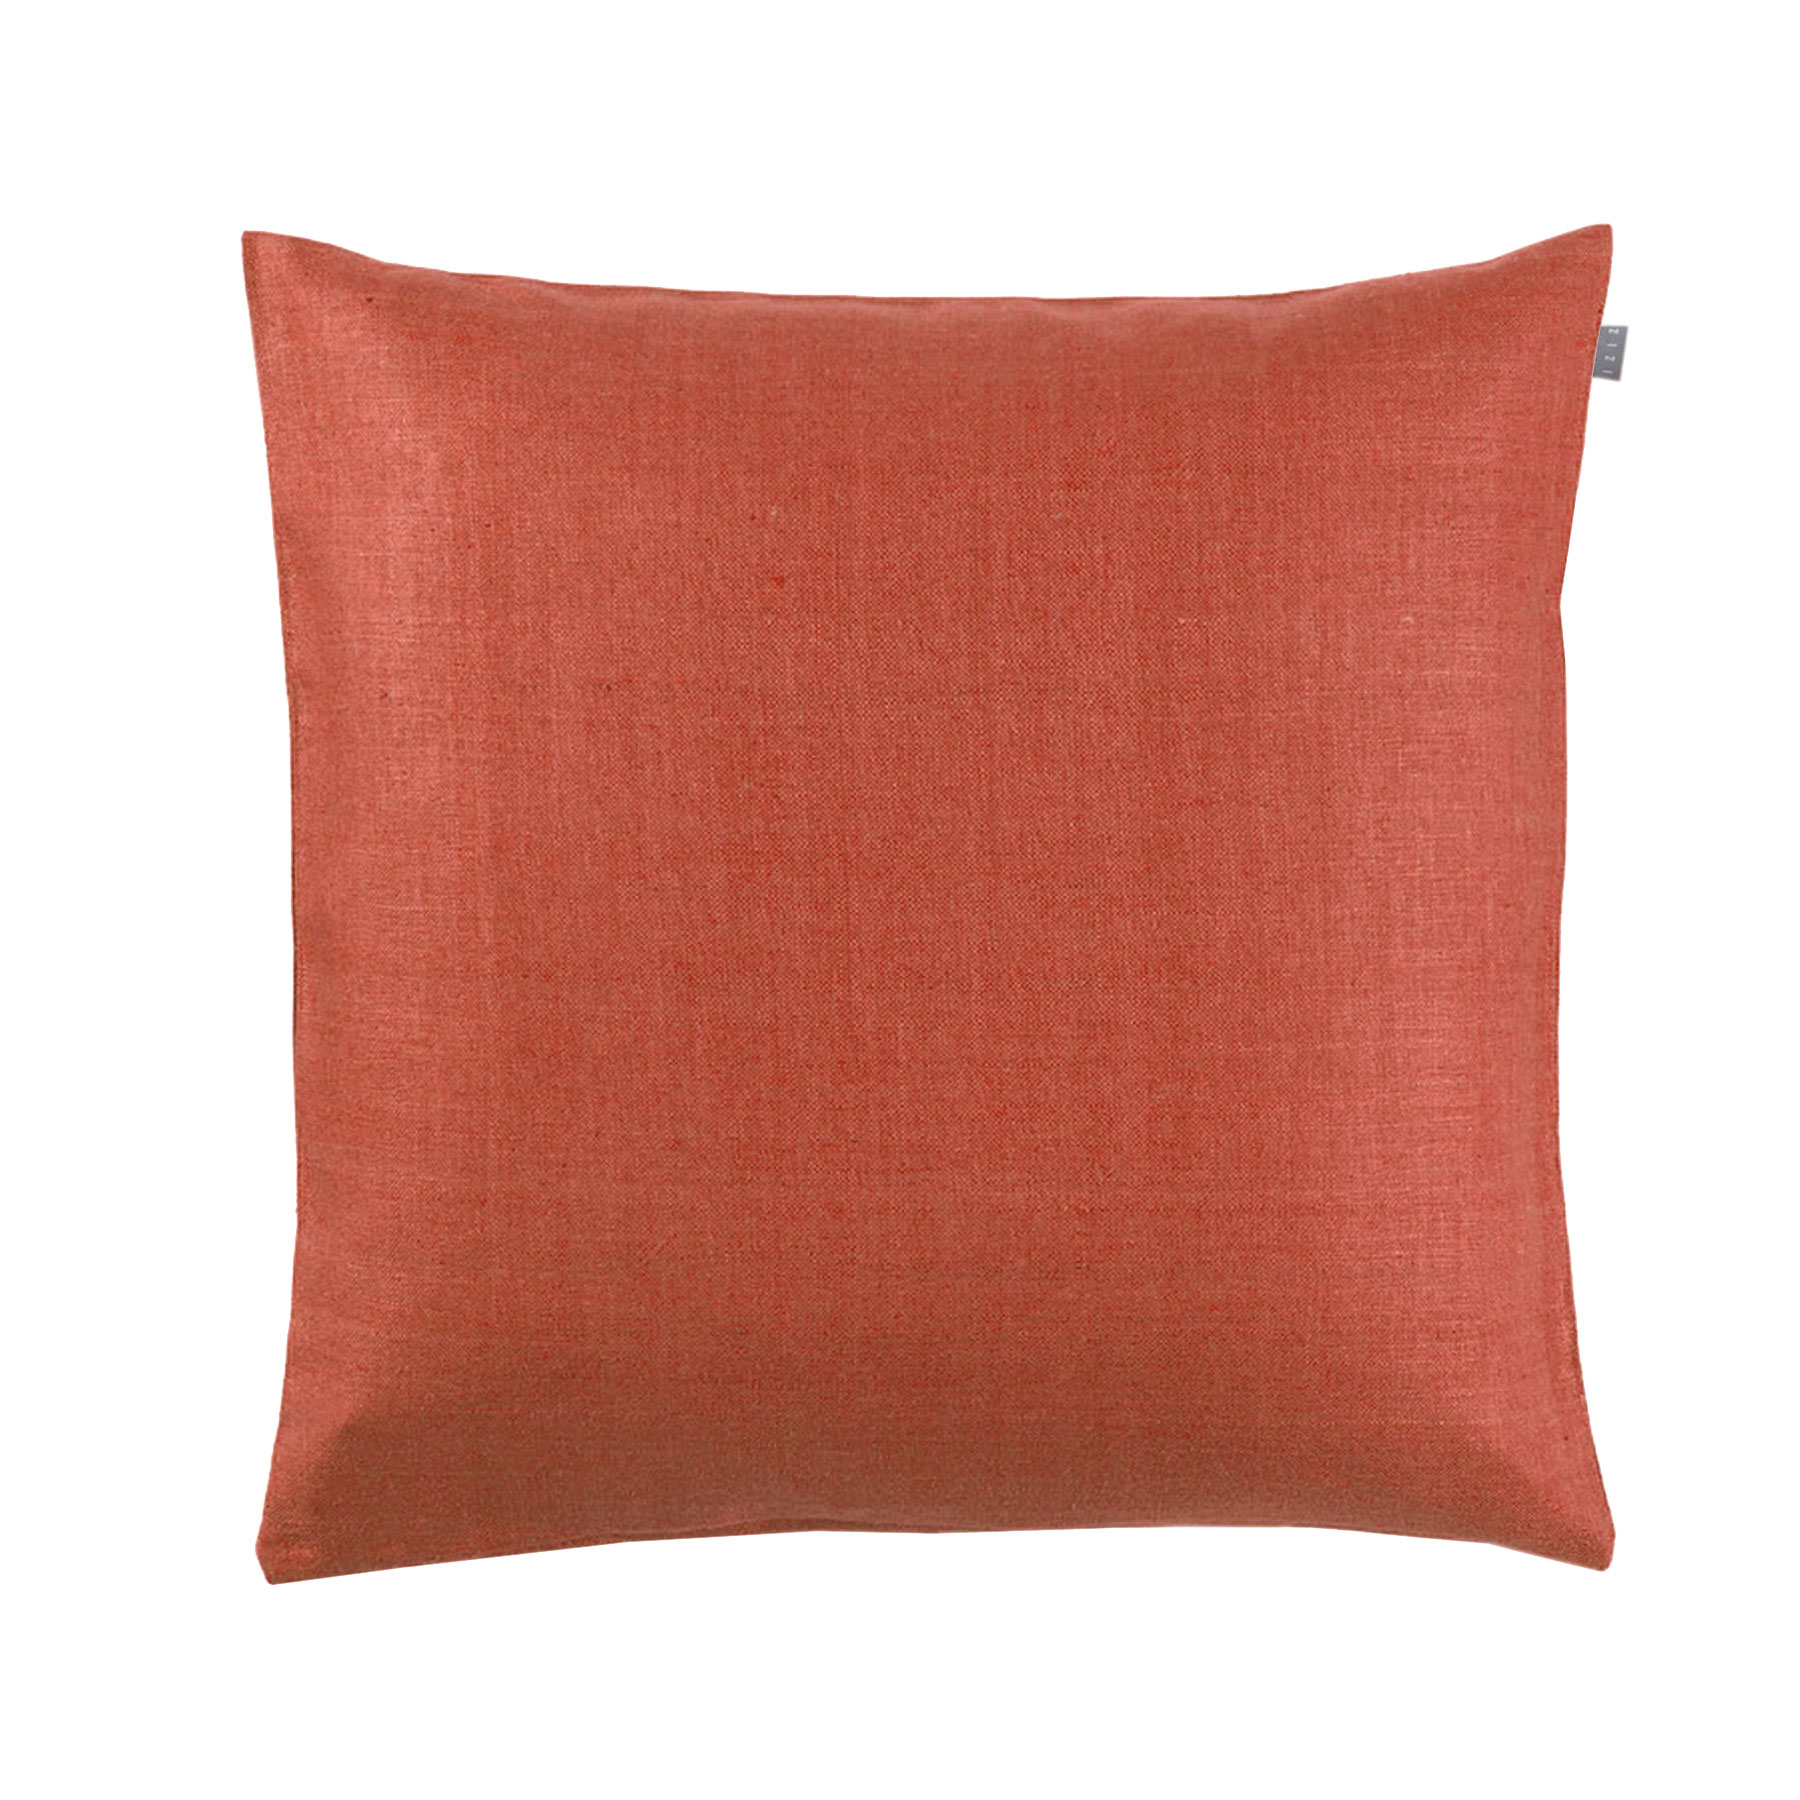 CUSHION COVER PLAIN <br />orange